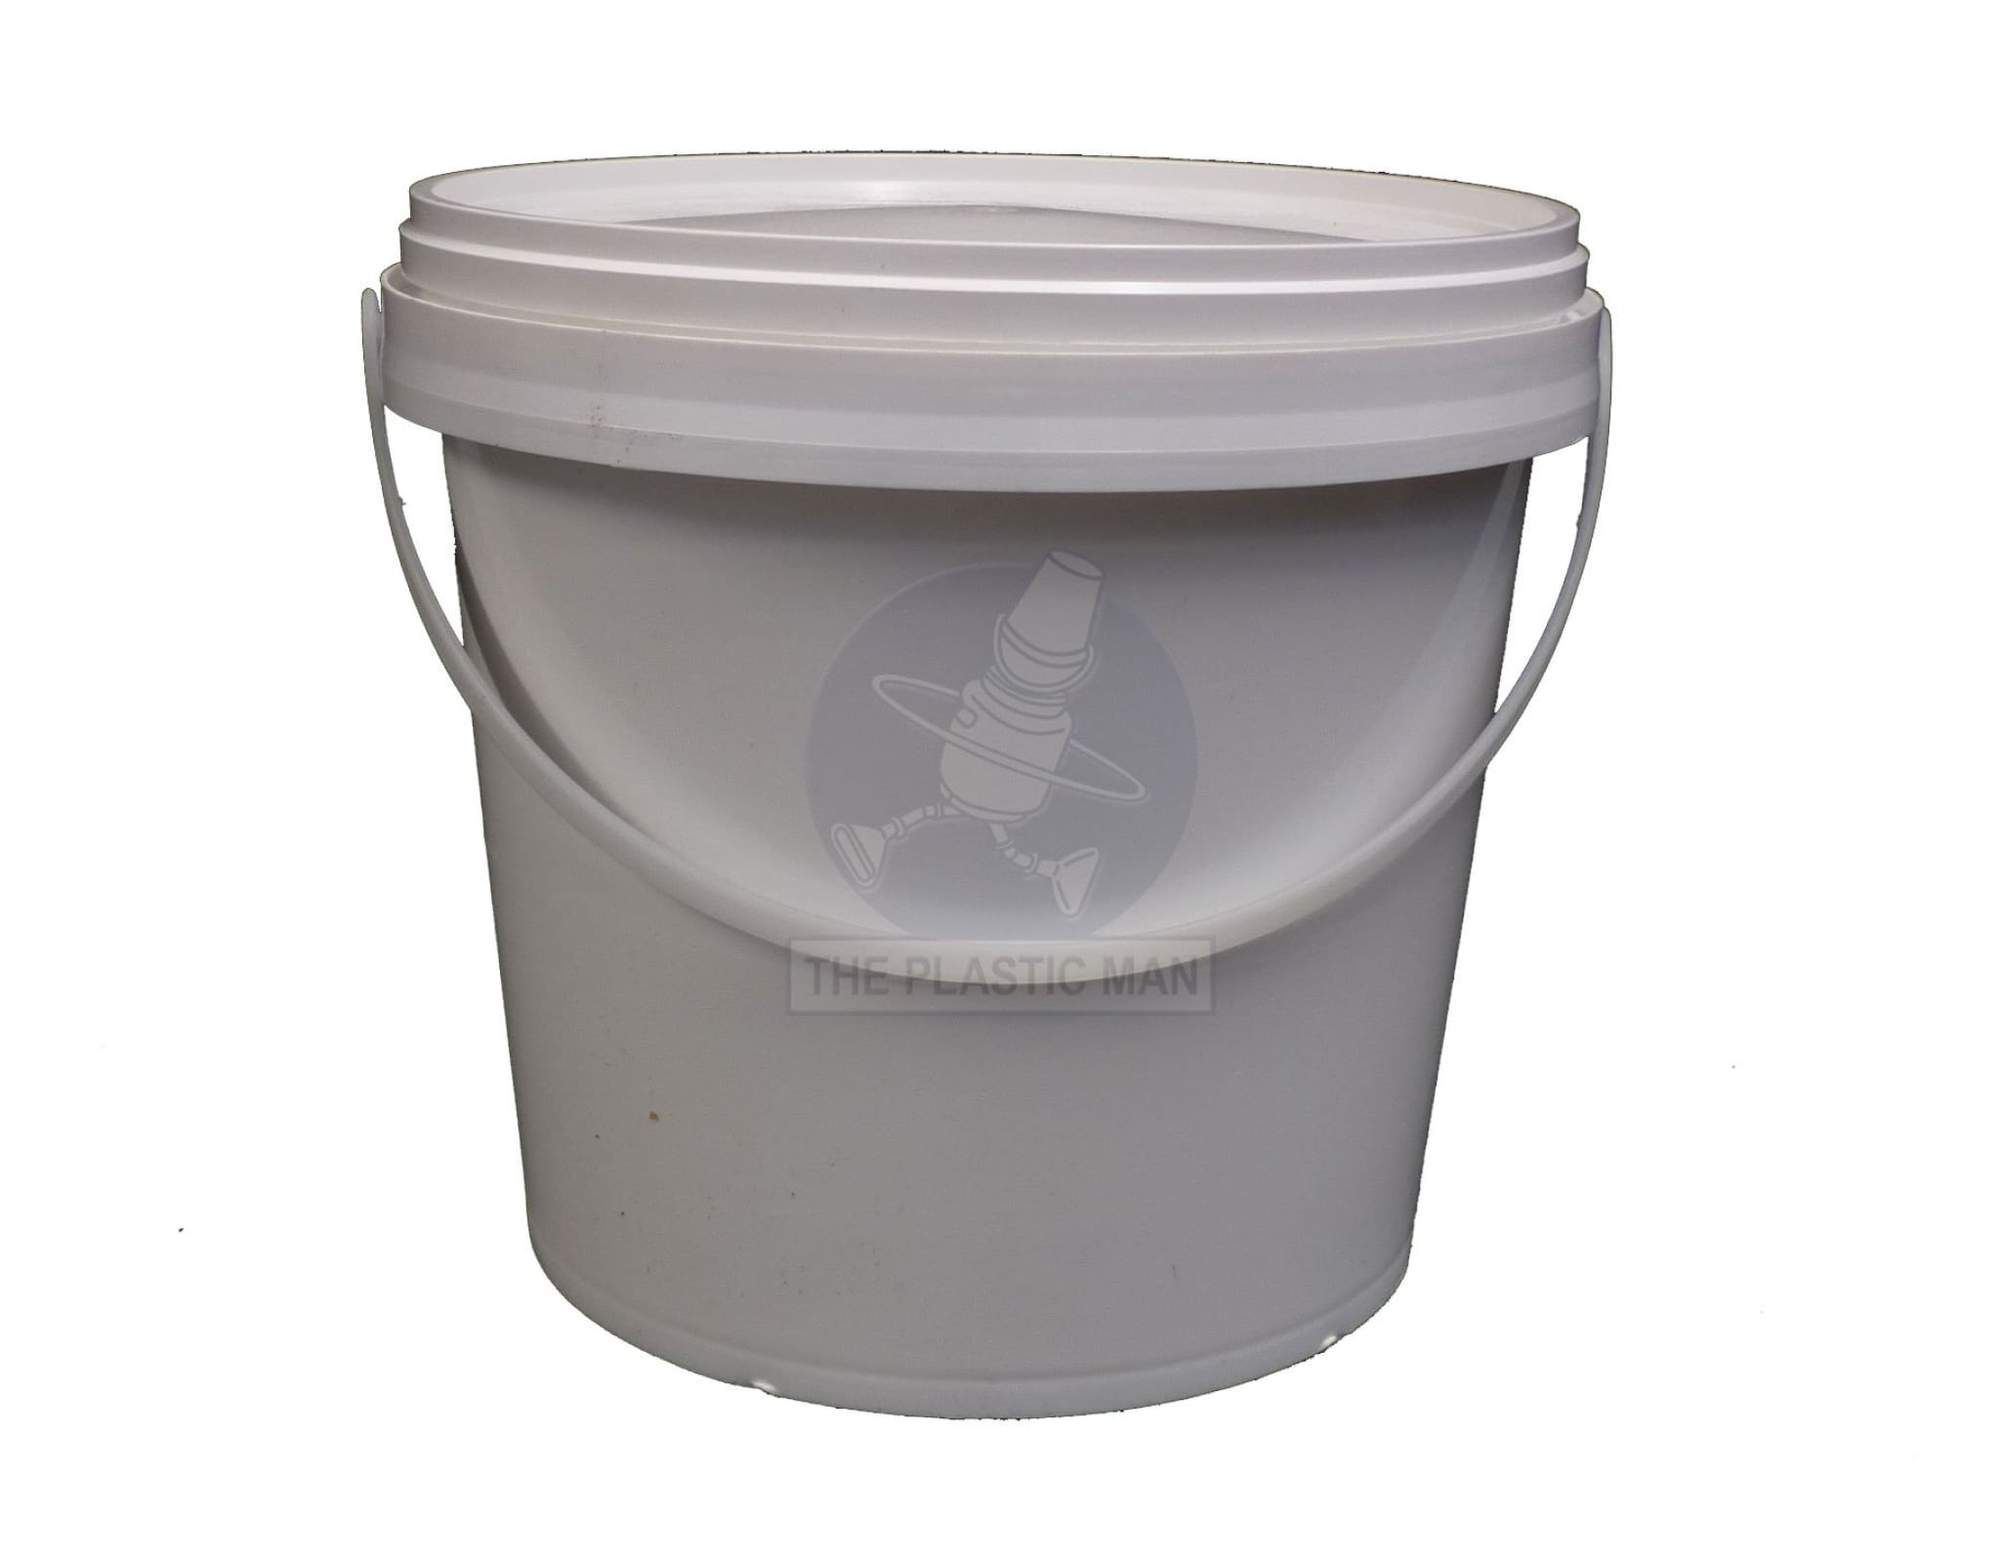 Bucket Tamper Evident 5L   Heavy duty food grade bucket with tamper evident lids. Perfect for anything from packaging food to mixing paints and resins.  Size (mm): 210 DIAM x 195H  Shop this product in the link in our bio now or online at .au